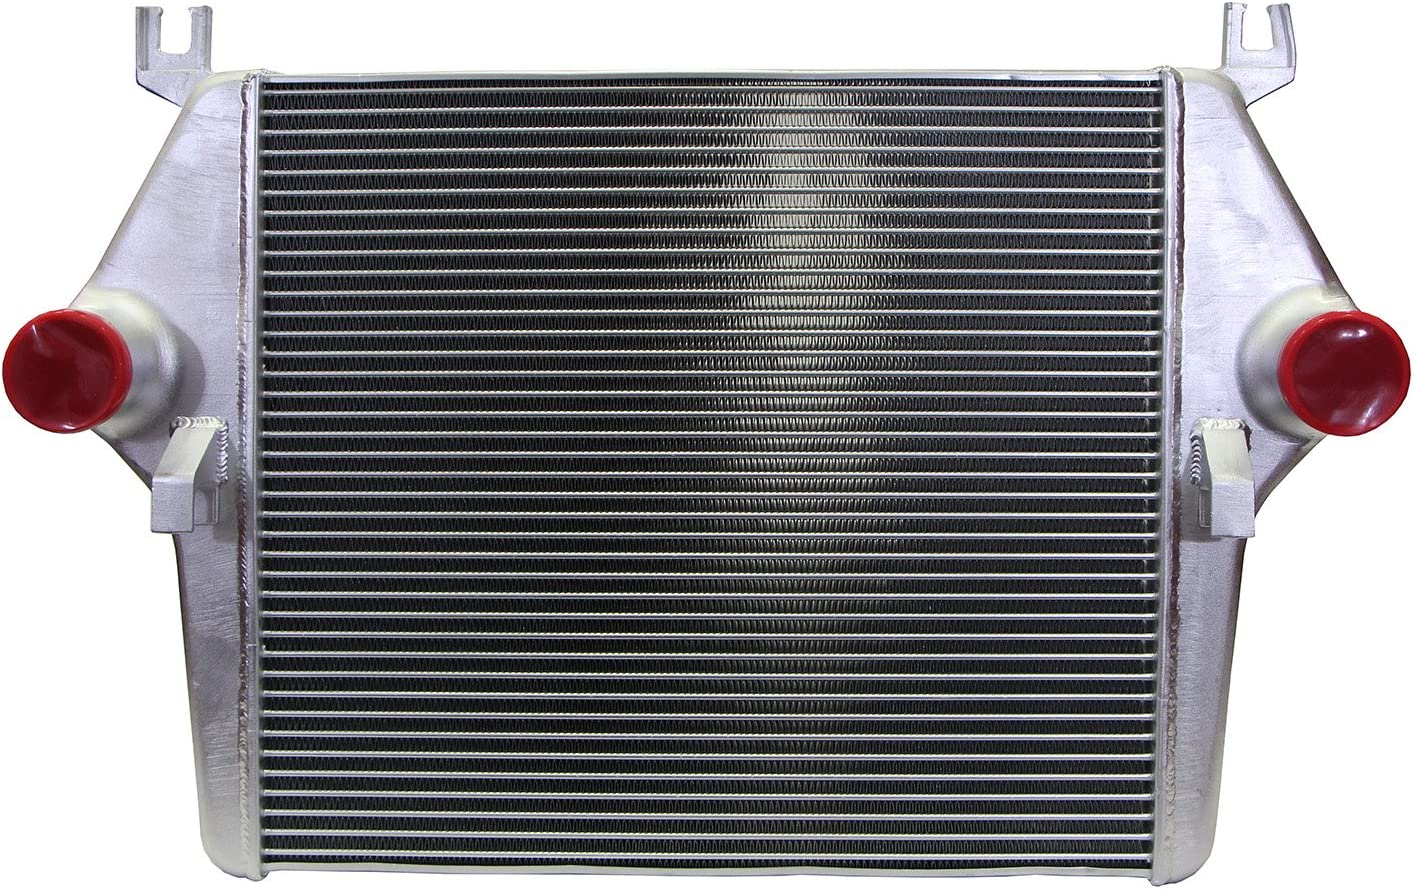 New Replacement Charge Air Cooler/Intercooler for Dodge Ram 2500, 3500 5.9L, 6.7L Trucks